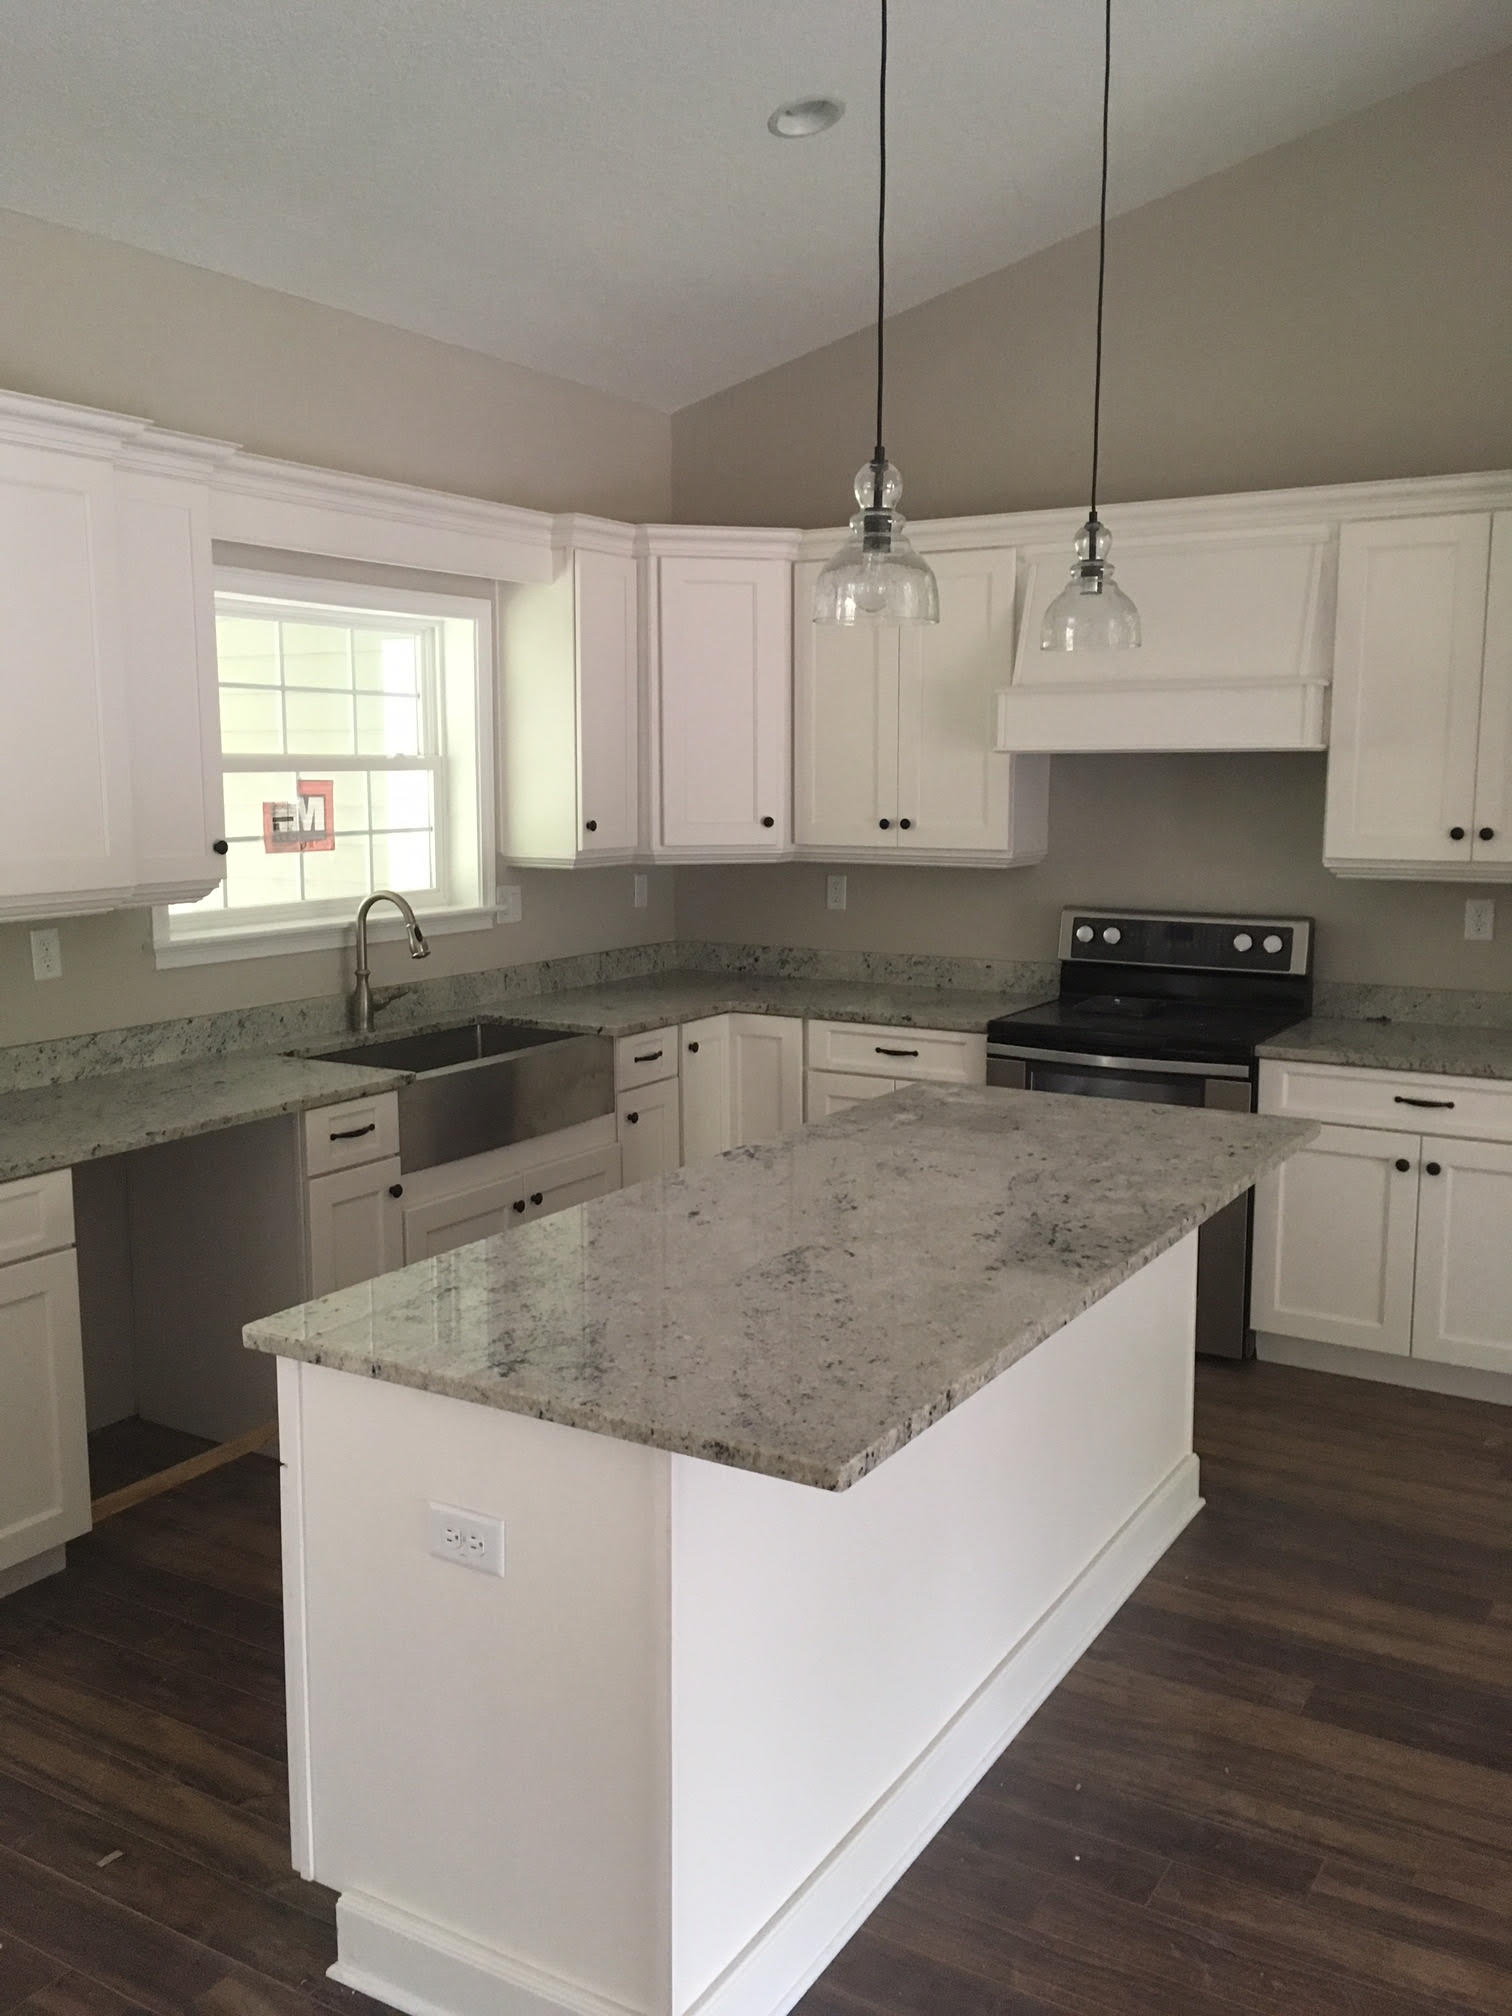 discovering of countertops columbia loveliness awaits your in east sc marble you granite dream images coast sea quartzite quartz pearl space kitchen the countertop